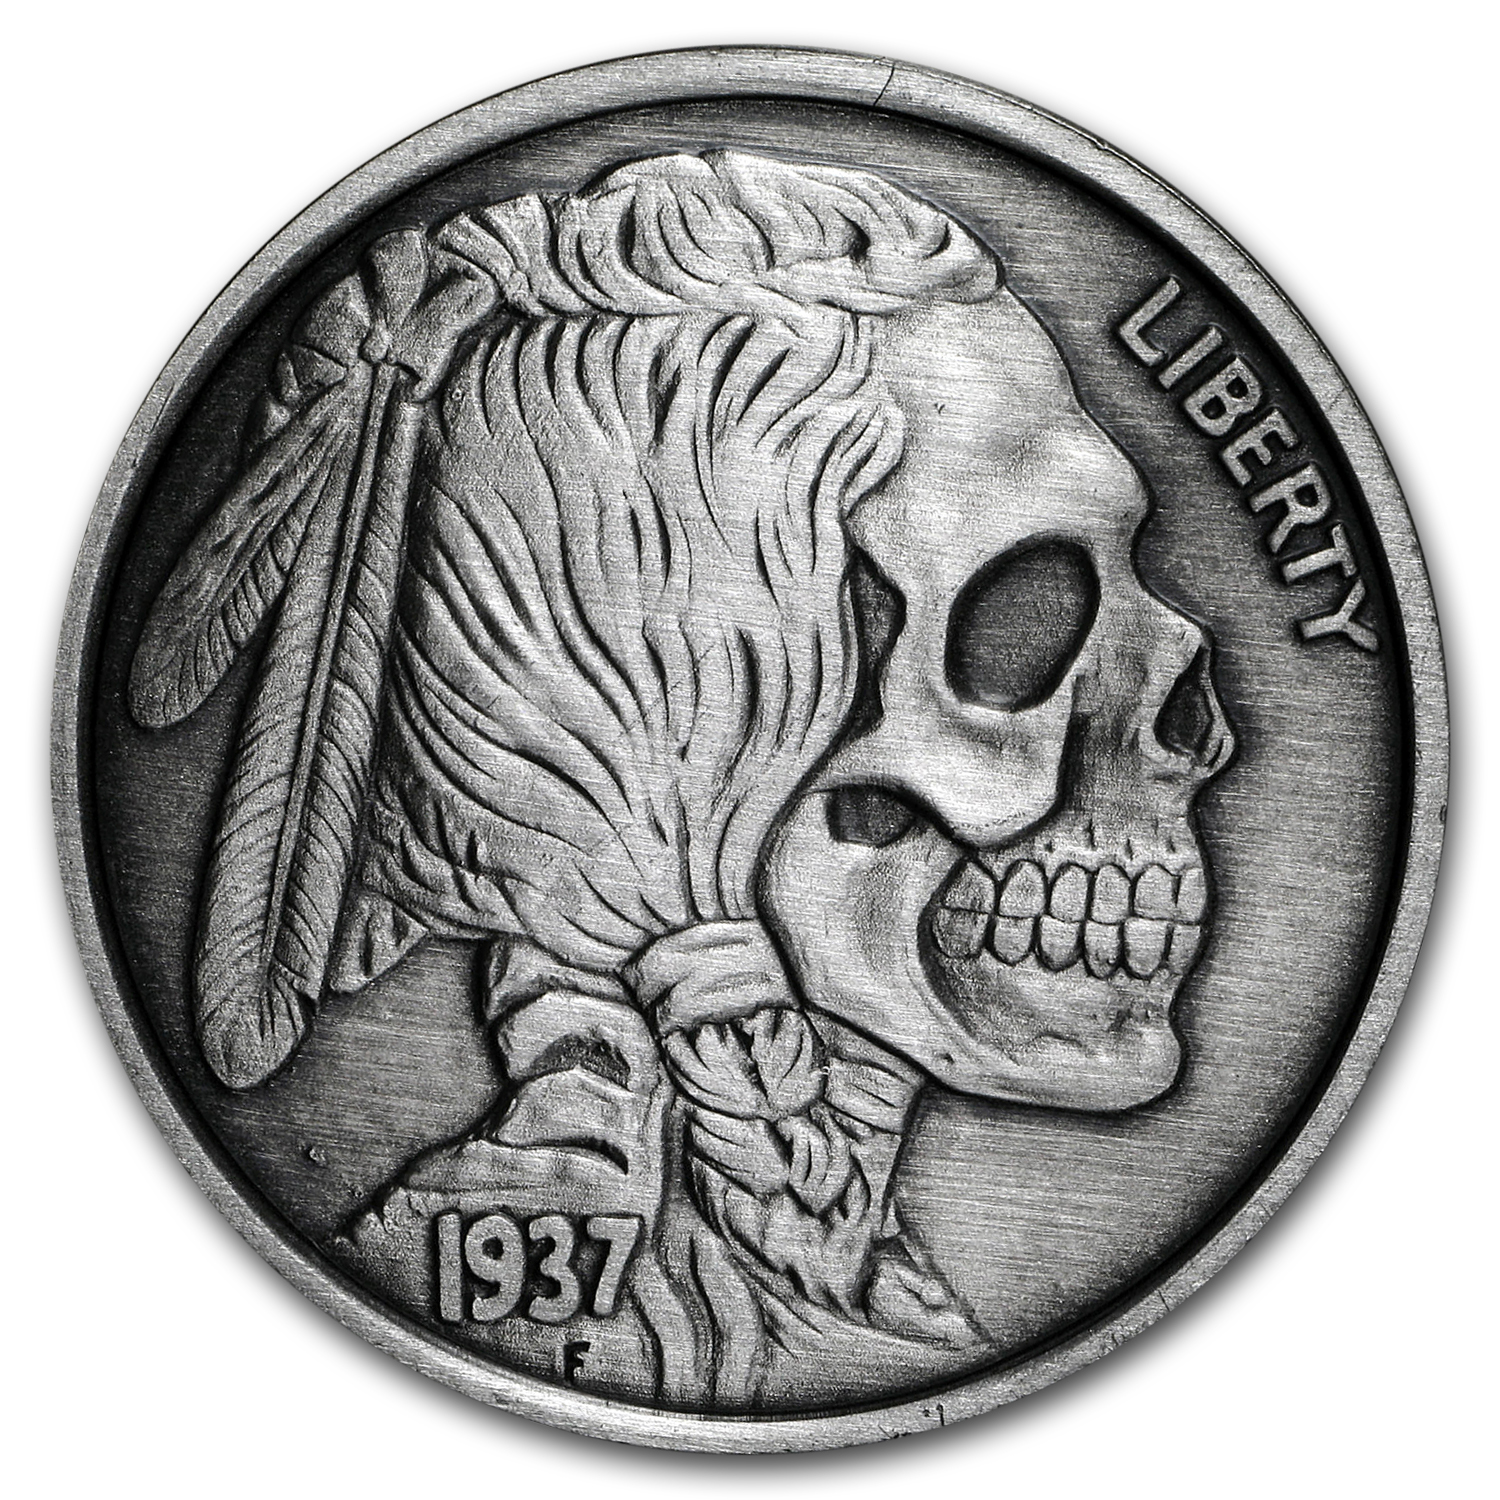 1 oz Silver Antique Round - United Snakes Series (Indian Skull)